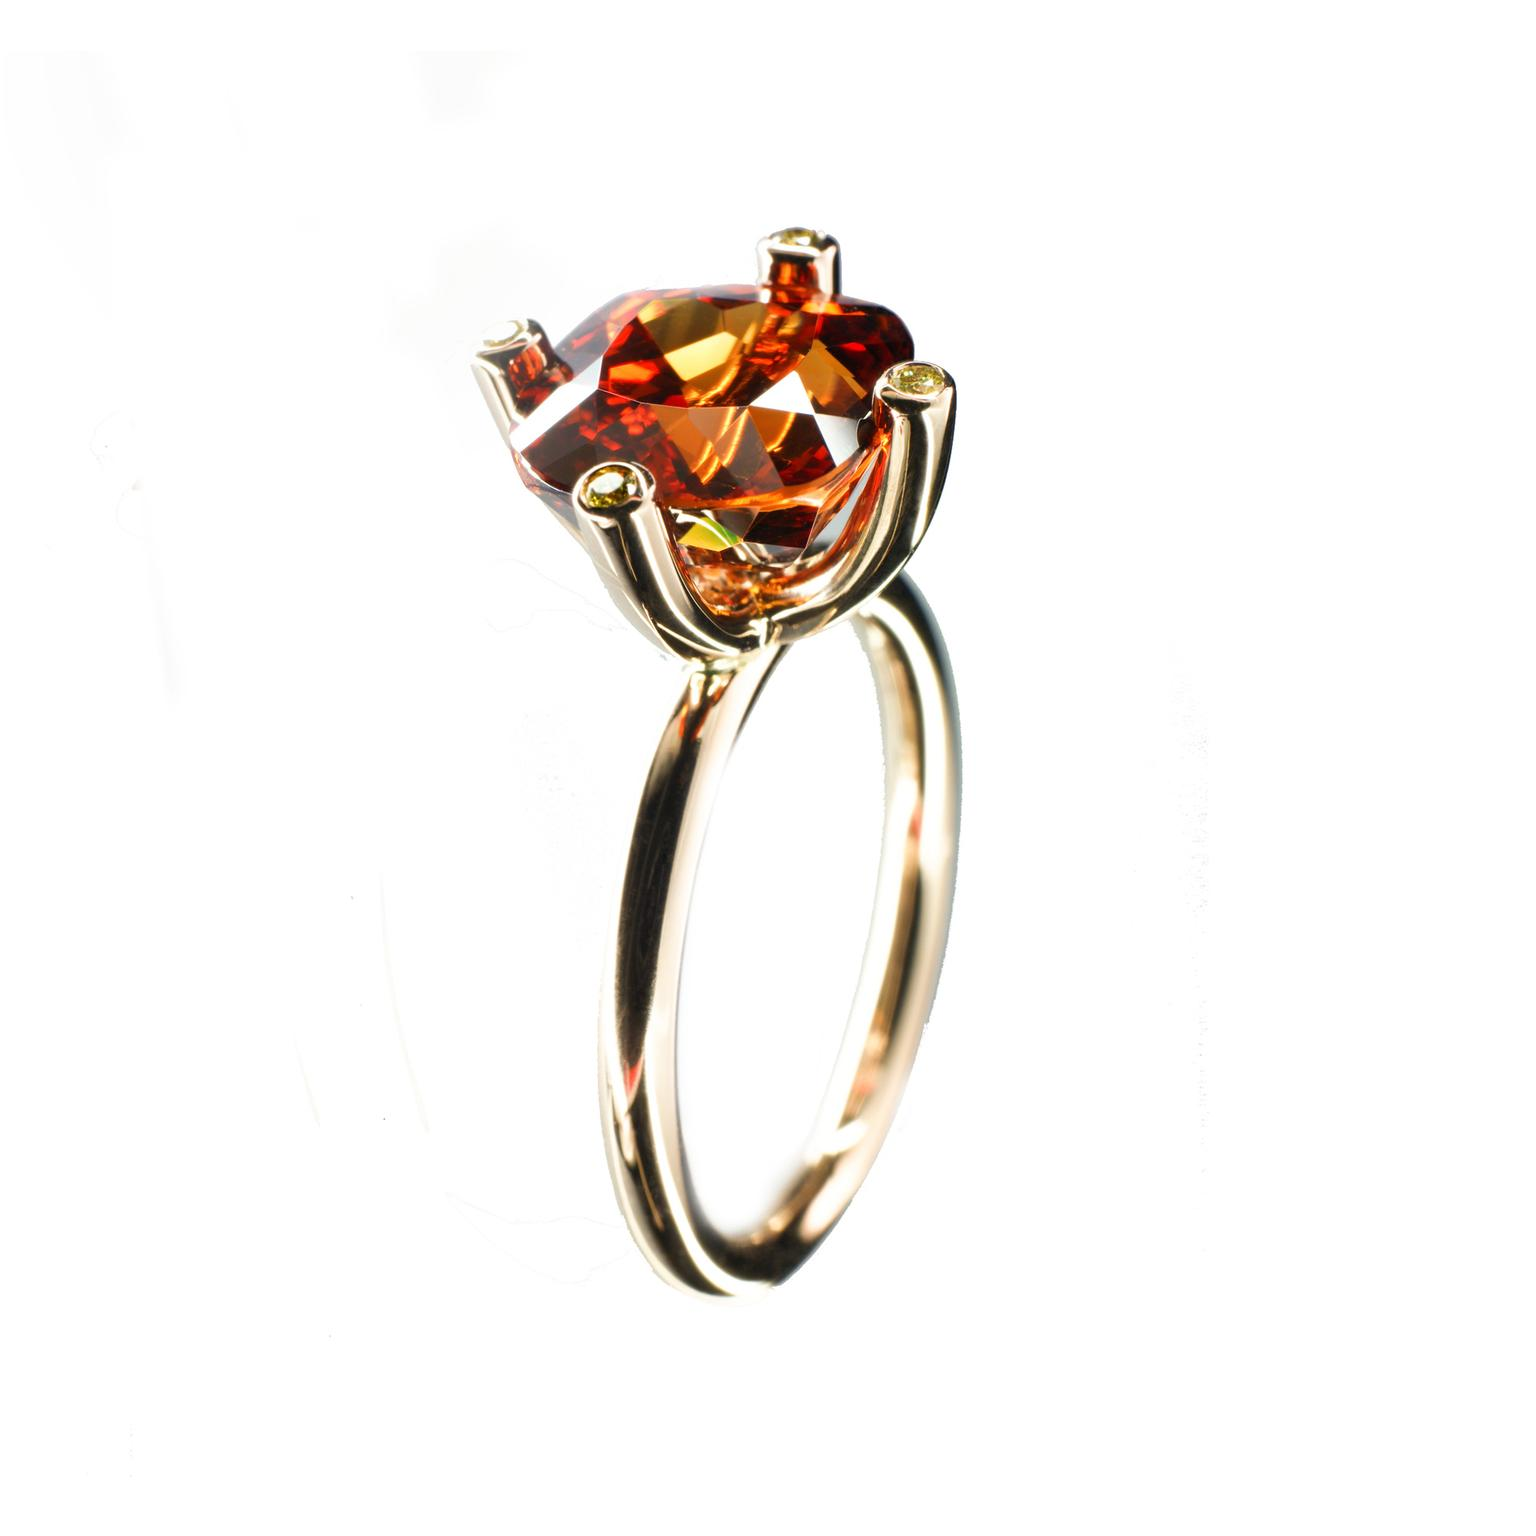 Cox + Power bespoke mandarin garnet engagement ring